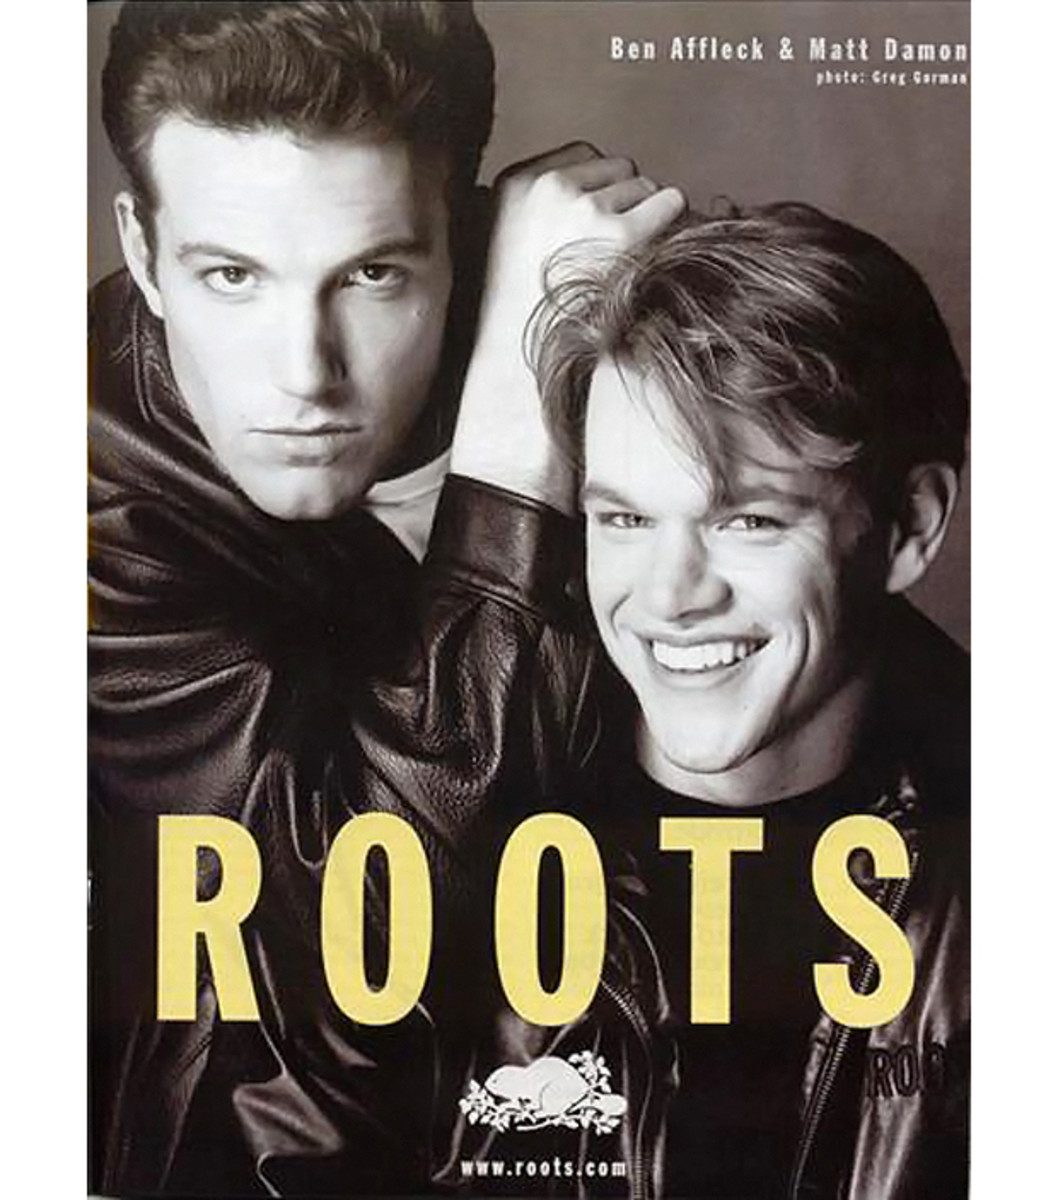 roots ben affleck matt damon